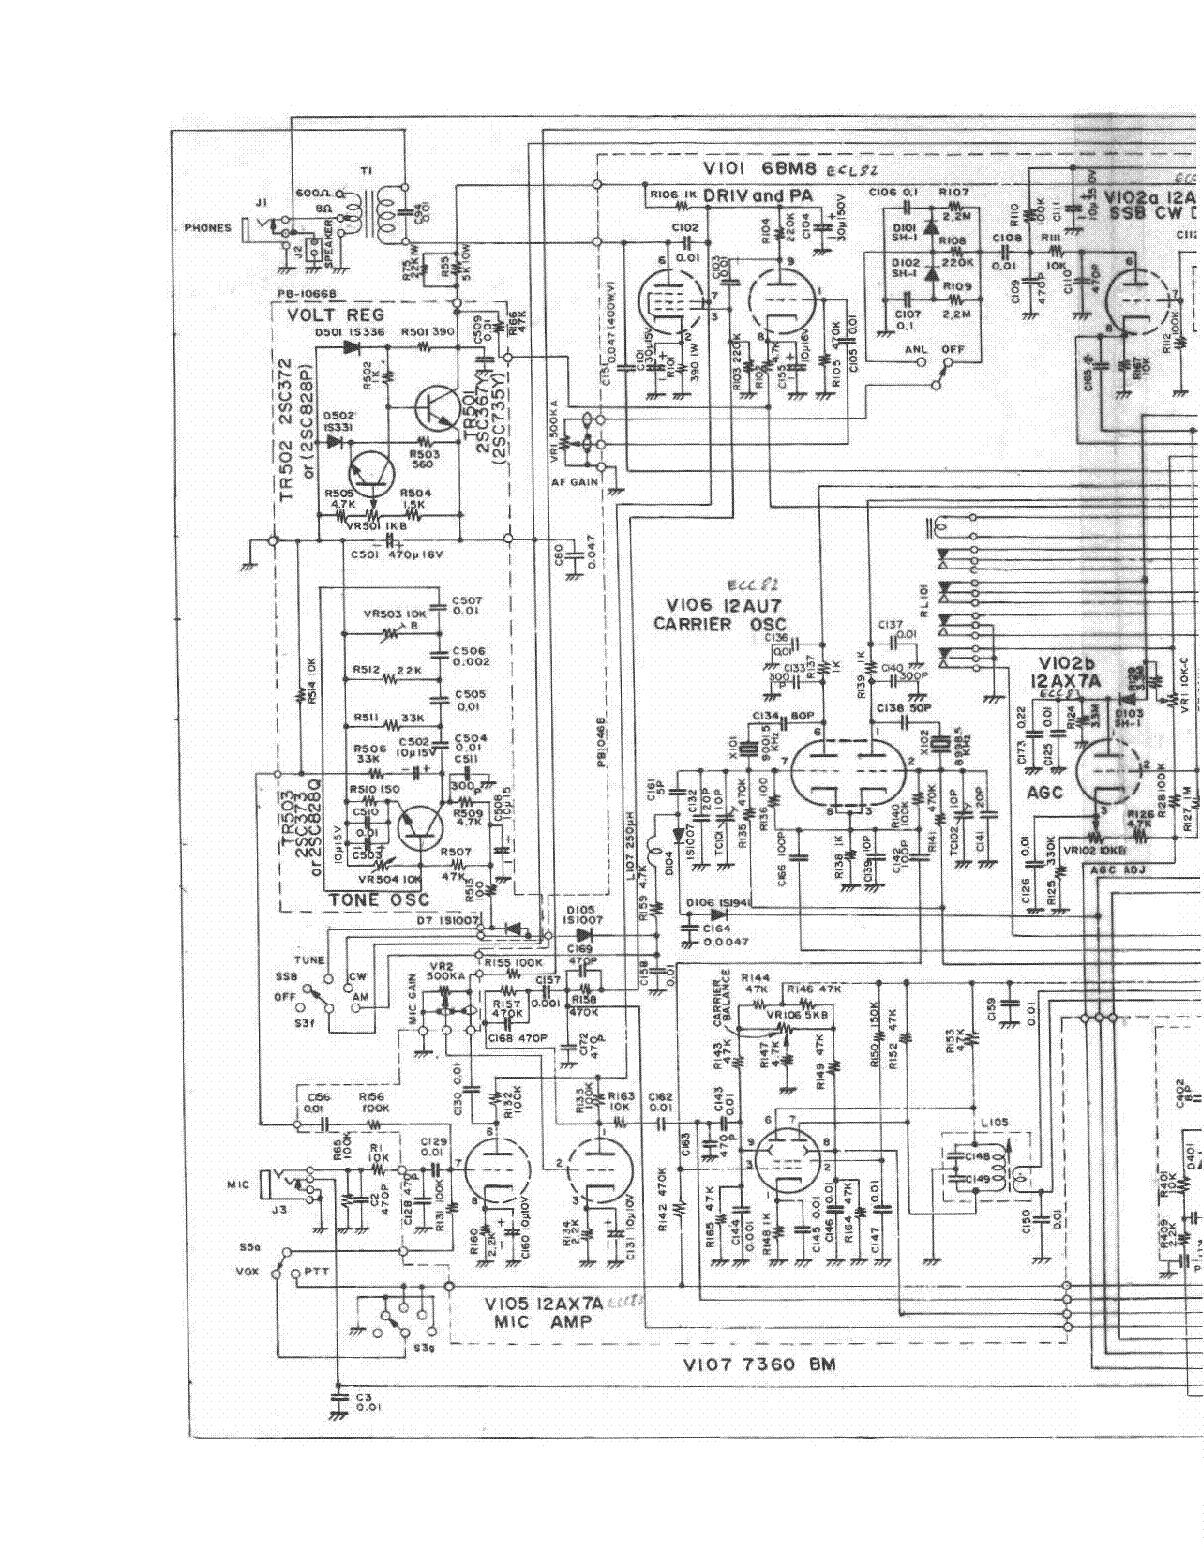 SOMMERKAMP FT 250 TRANSCEIVER Service Manual download ... on bridge schematic, rs-232 schematic, sensor schematic, server schematic, mouse schematic, motor schematic, multiplexer schematic, cpu schematic, power schematic, balun schematic, camera schematic, modem schematic, audio schematic, rf probe schematic,